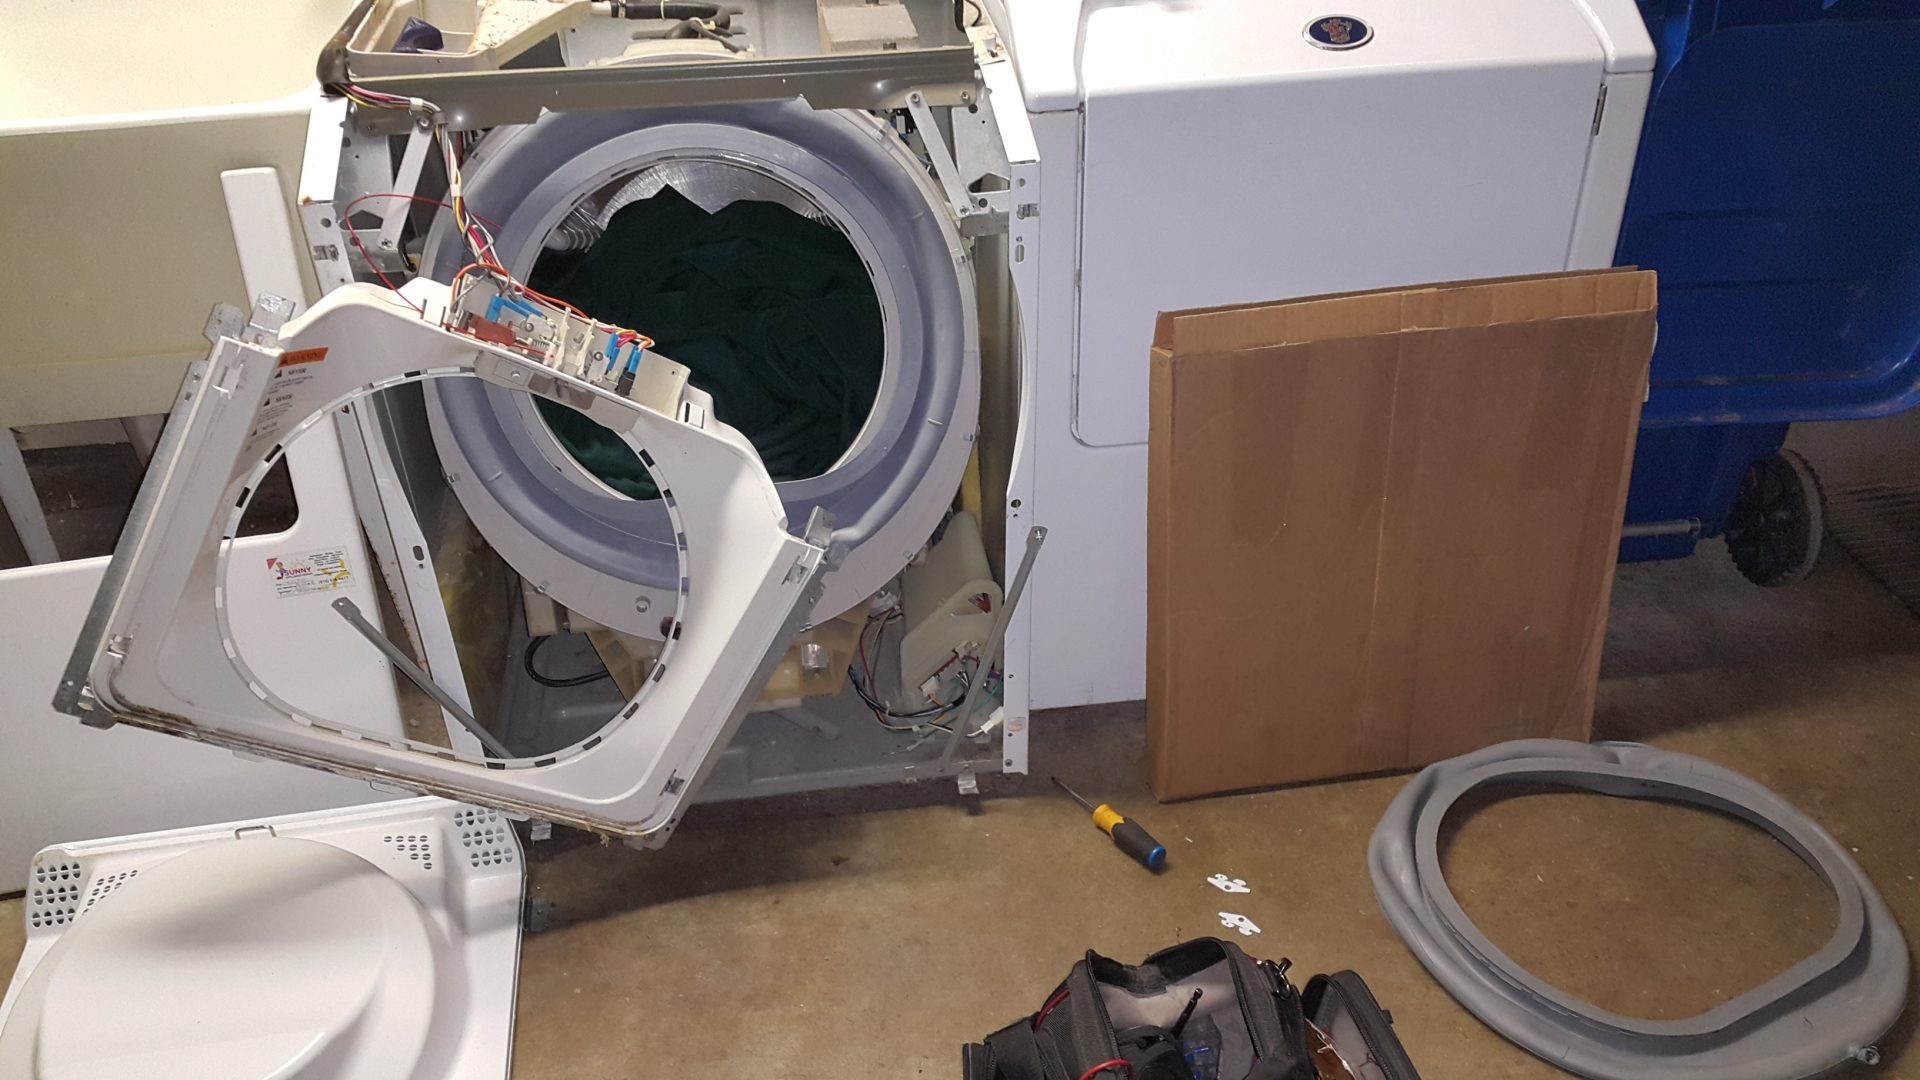 washer maytag neptune mah3000aww leaking water from the front rh sunnyappliancerepairs com Maytag Bearing Removal Tool Maytag Quiet Series 300